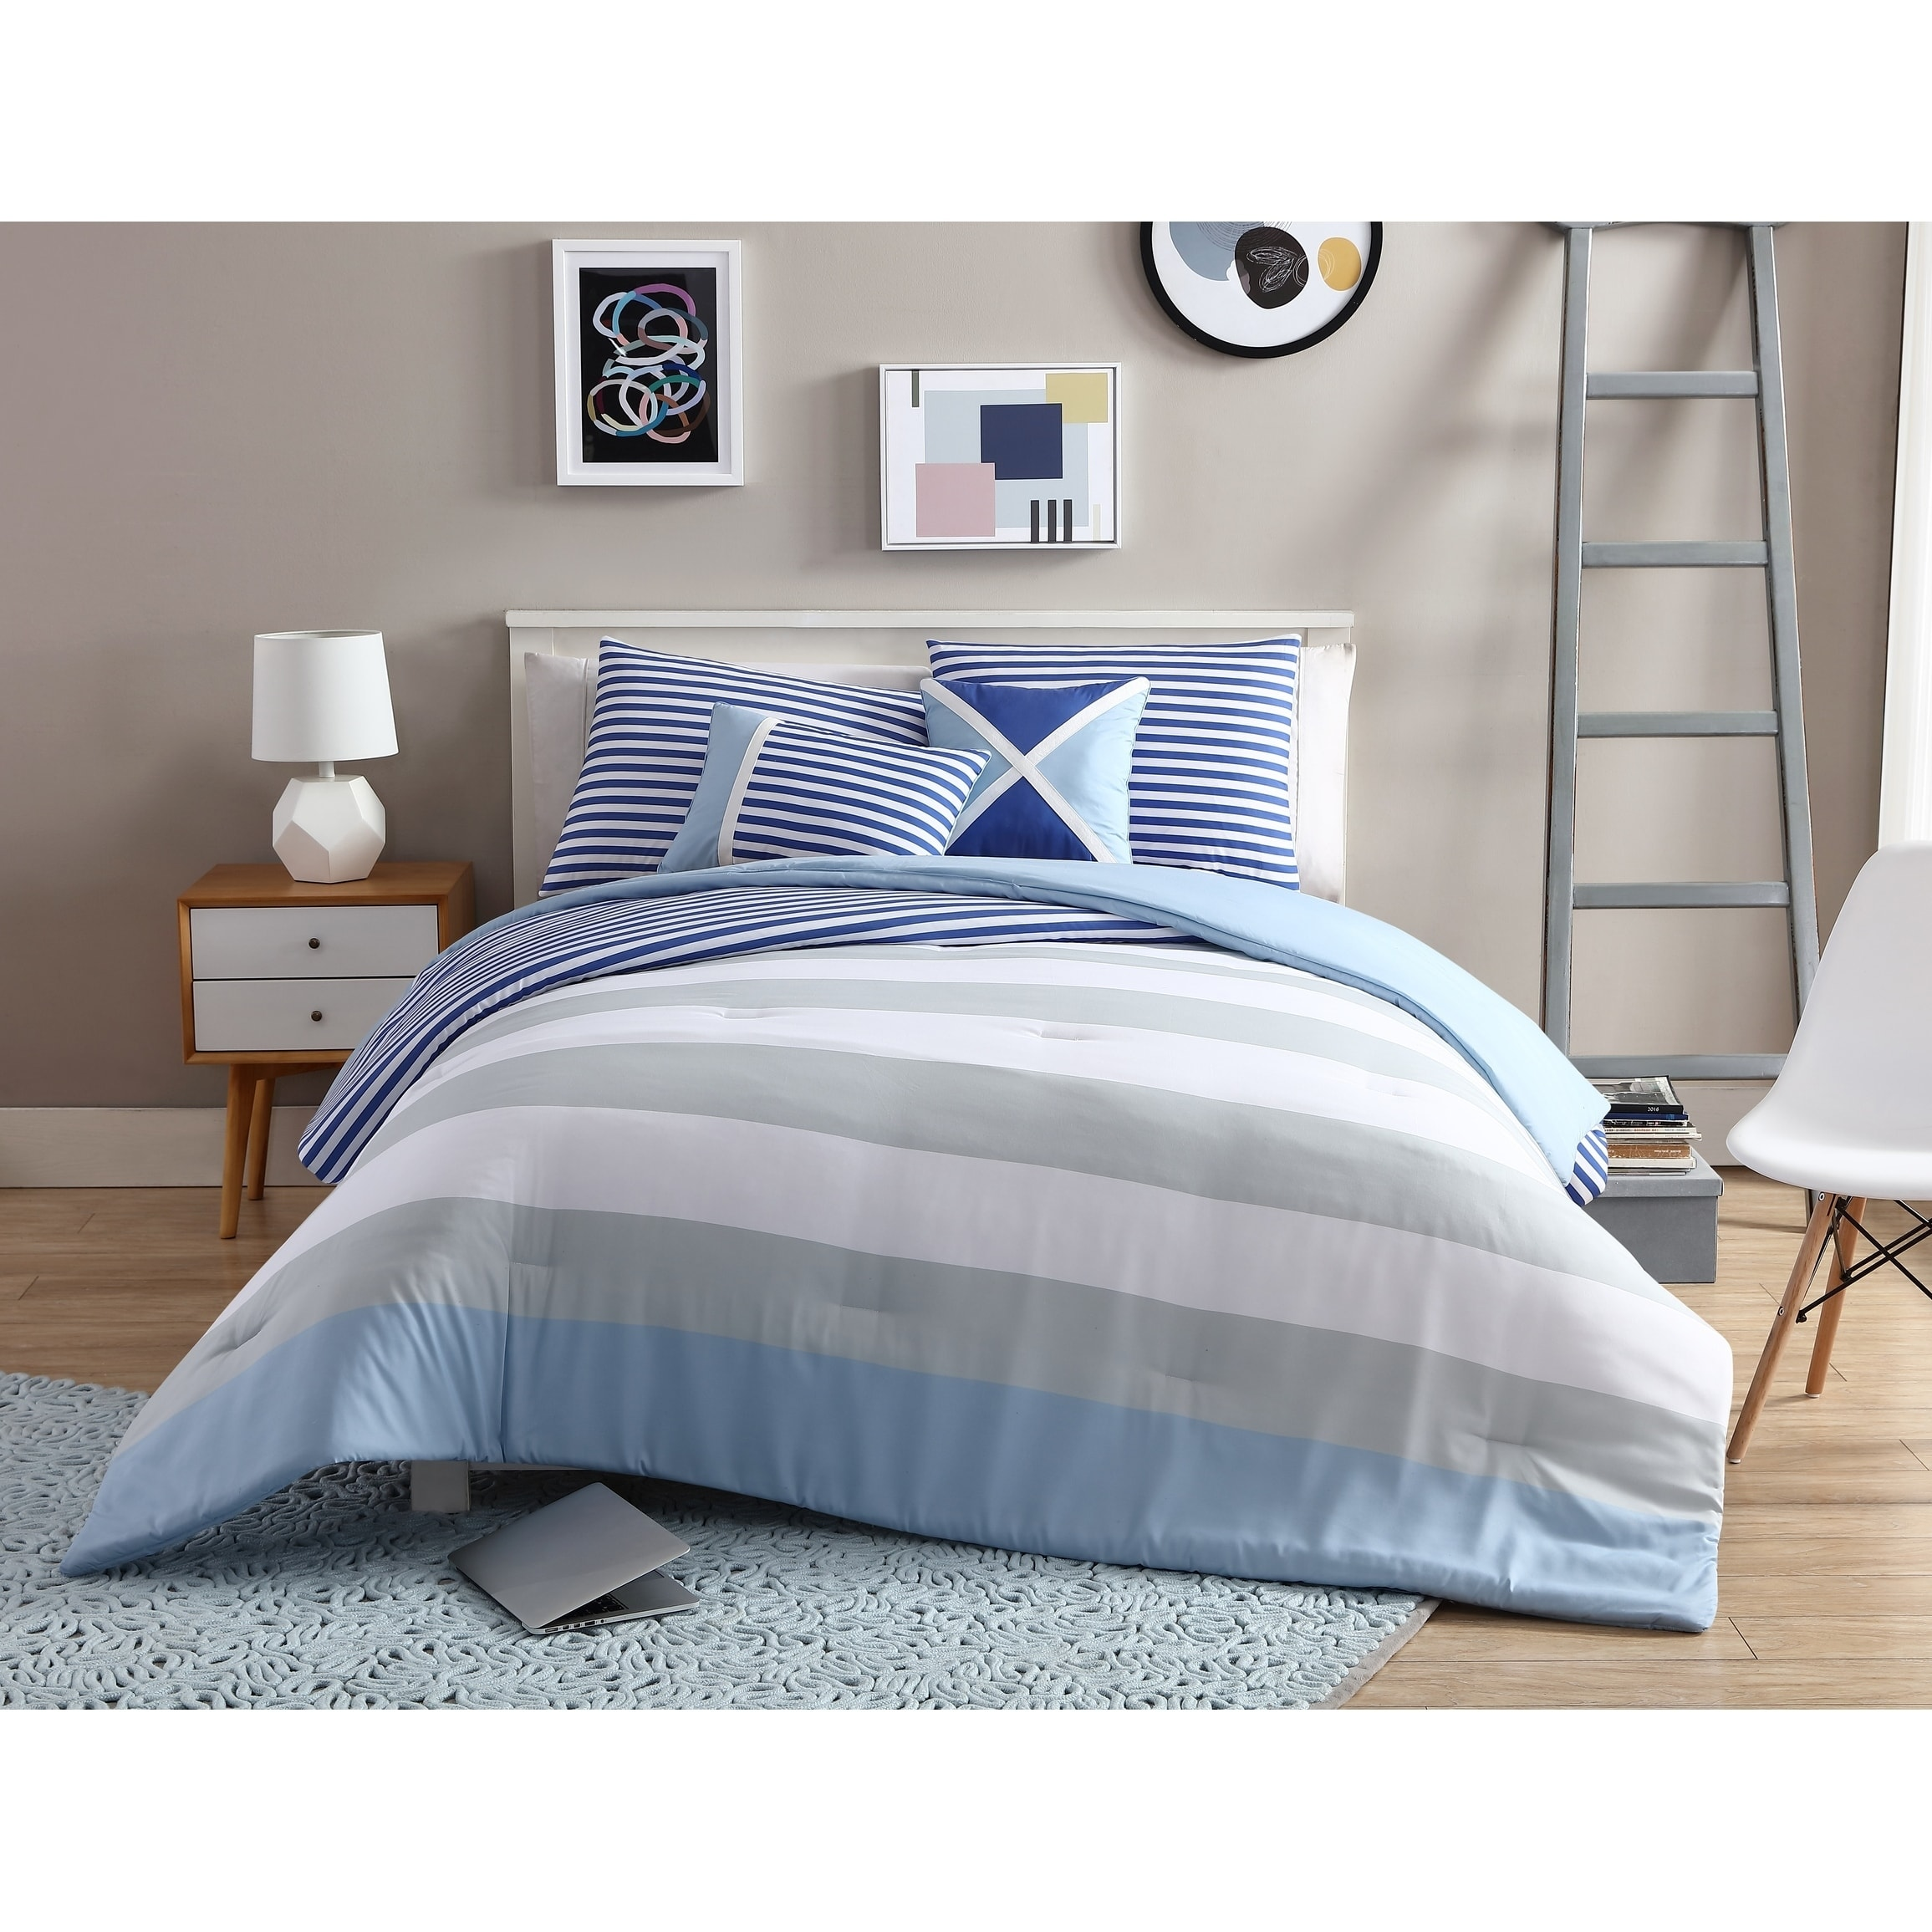 VCNY Home Navy/Grey Girl Collegiate Stripe 4/5-Piece Comforter Bedding Set, Shams and Decorative Pillows Included